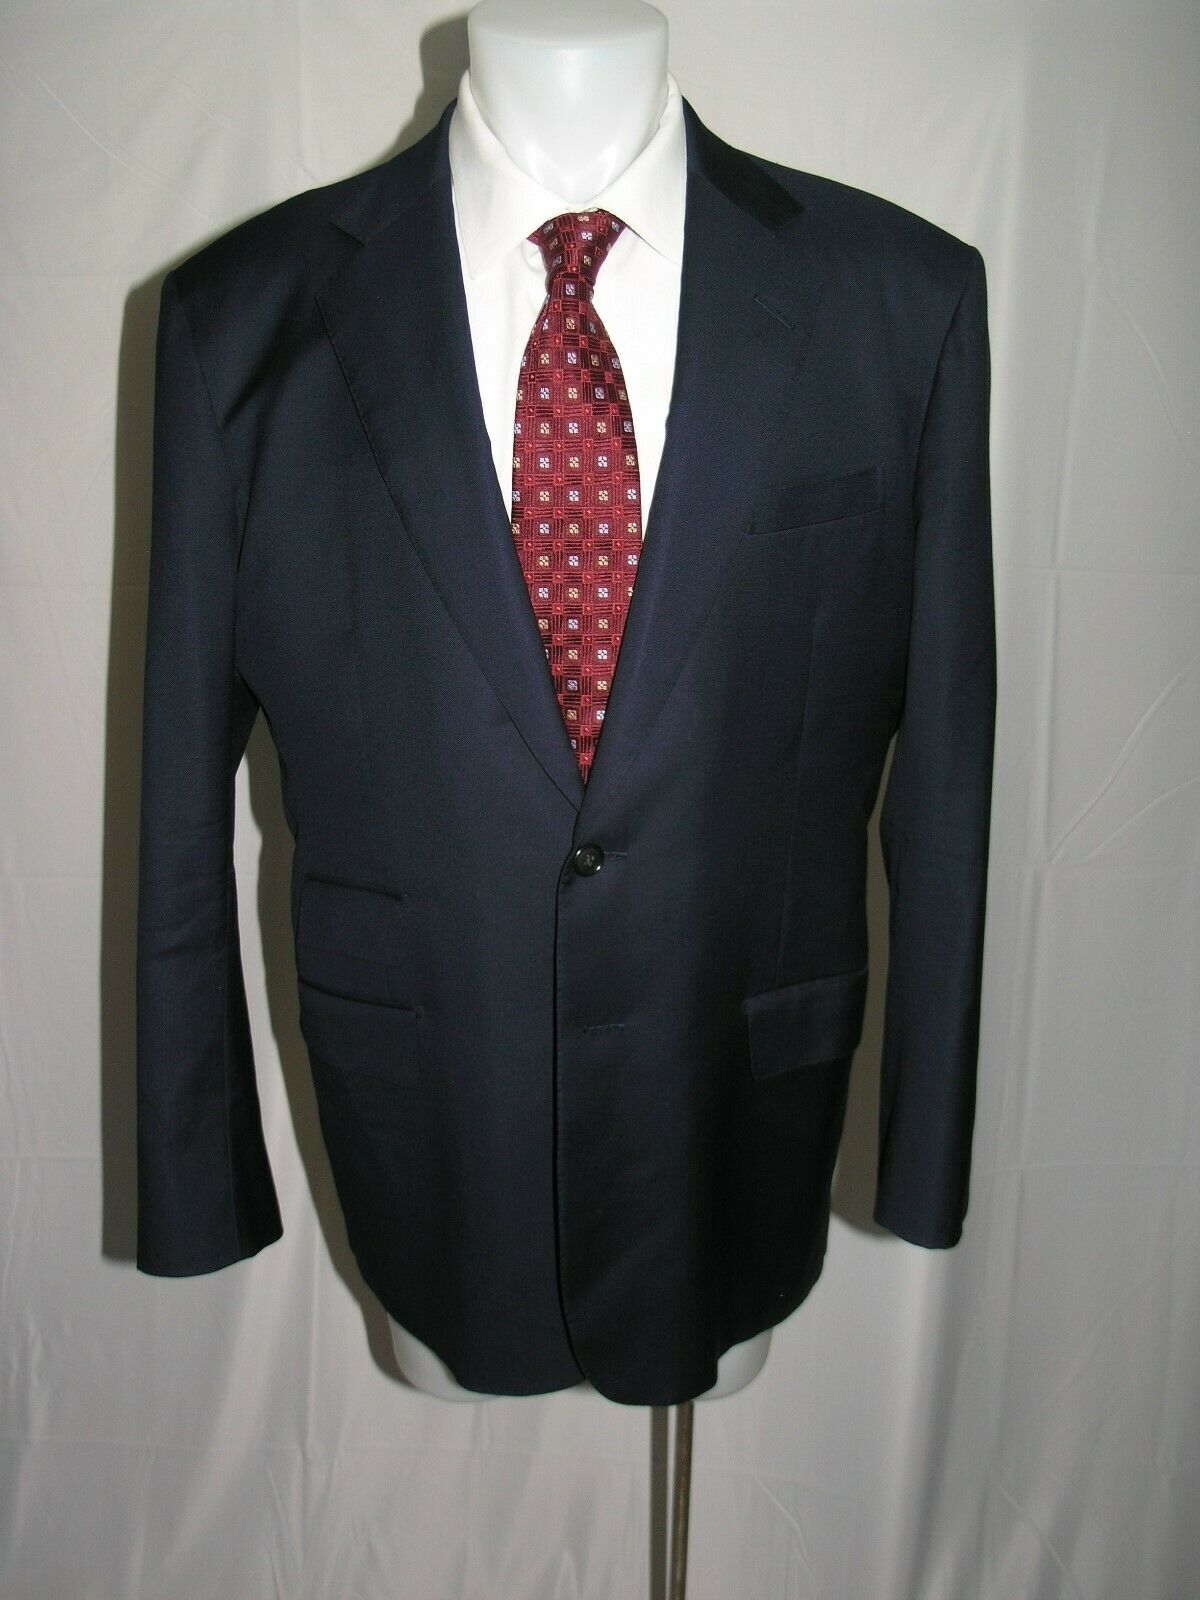 Whitcomb Shaftesbury Savile Row Two Button Bespoke Blazer 46L